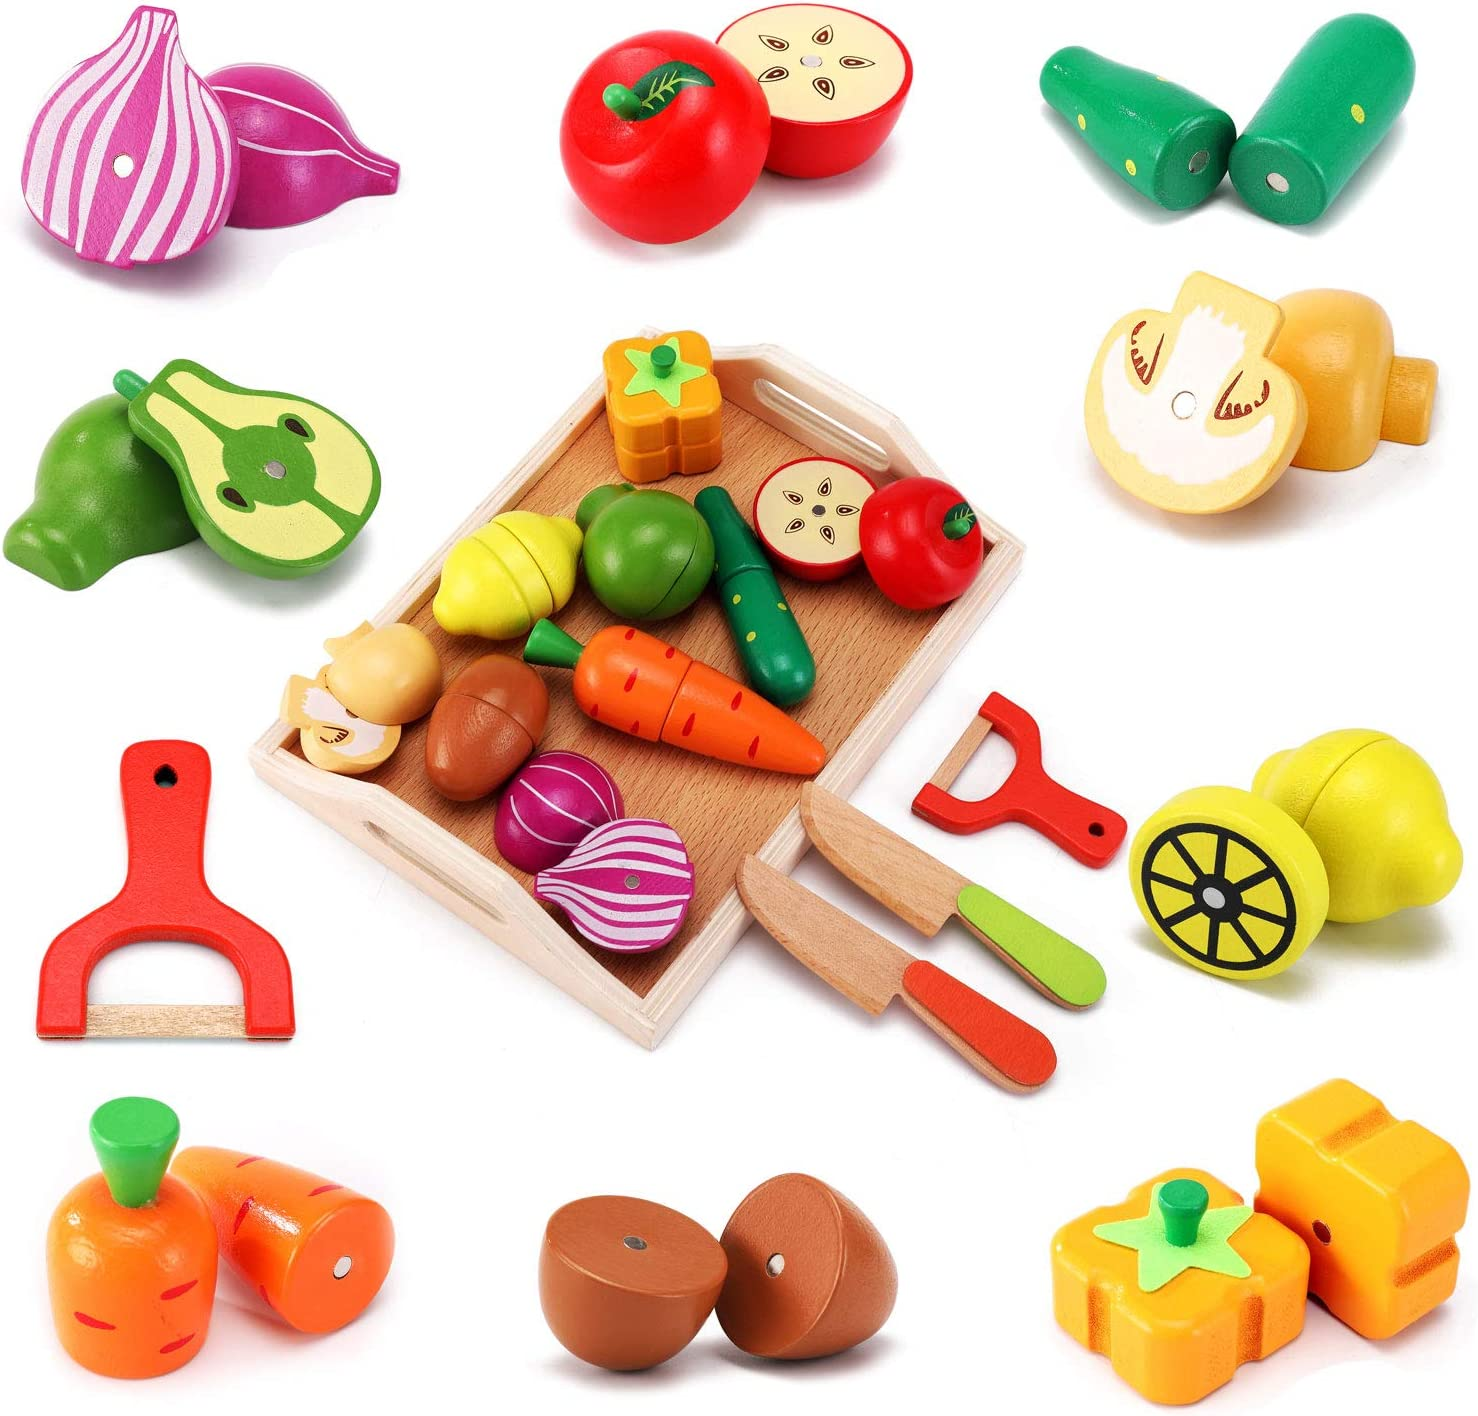 CARLORBO Wooden Toys Food for Kids Kitchen - Play Food Cutting Fruits and Vegetables Set for Pretend Role Play